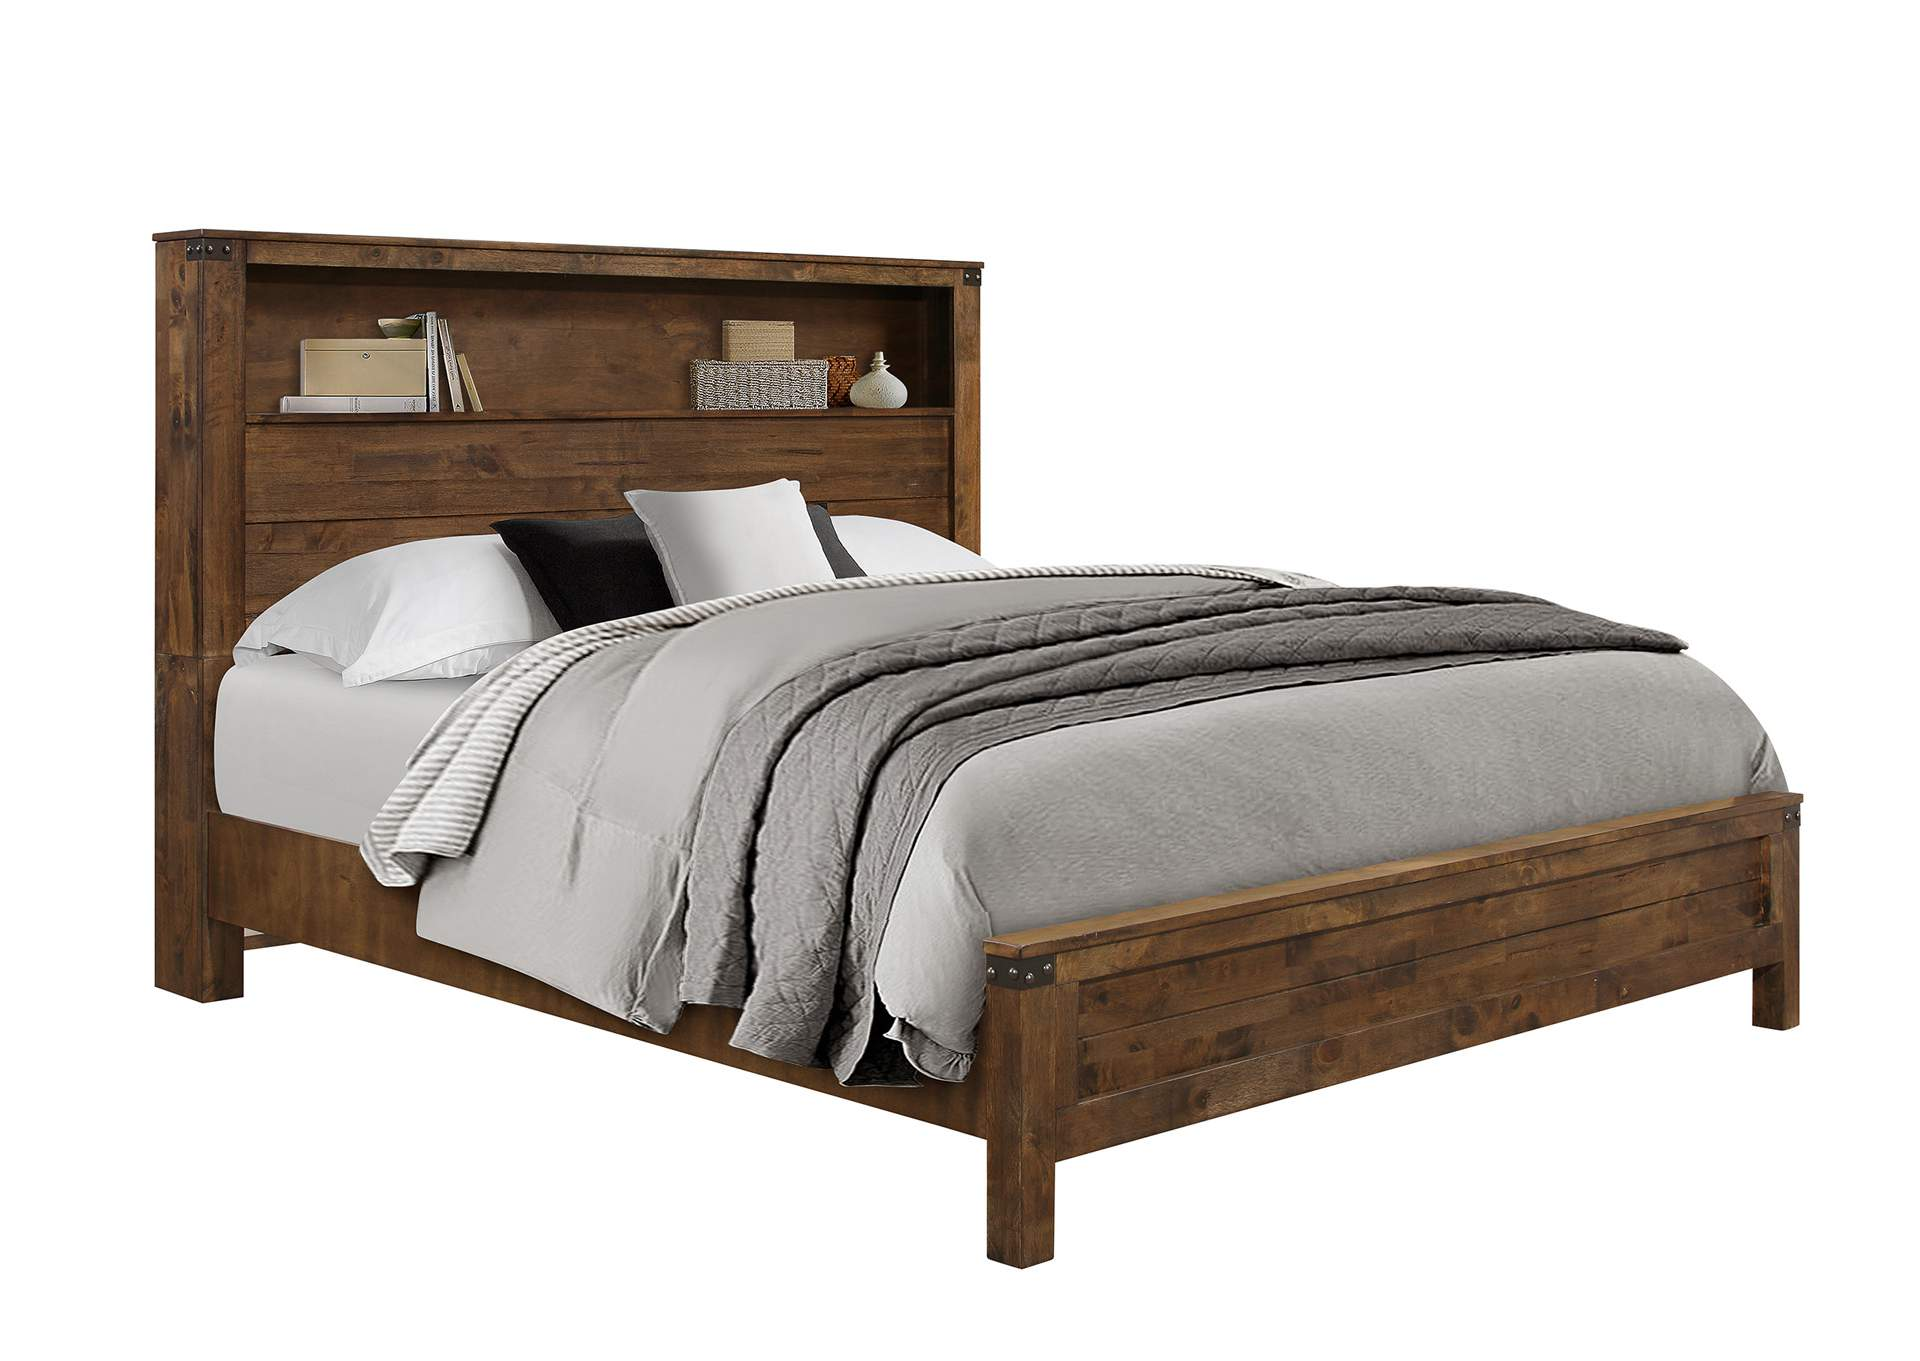 Victoria King Bed,Global Furniture USA